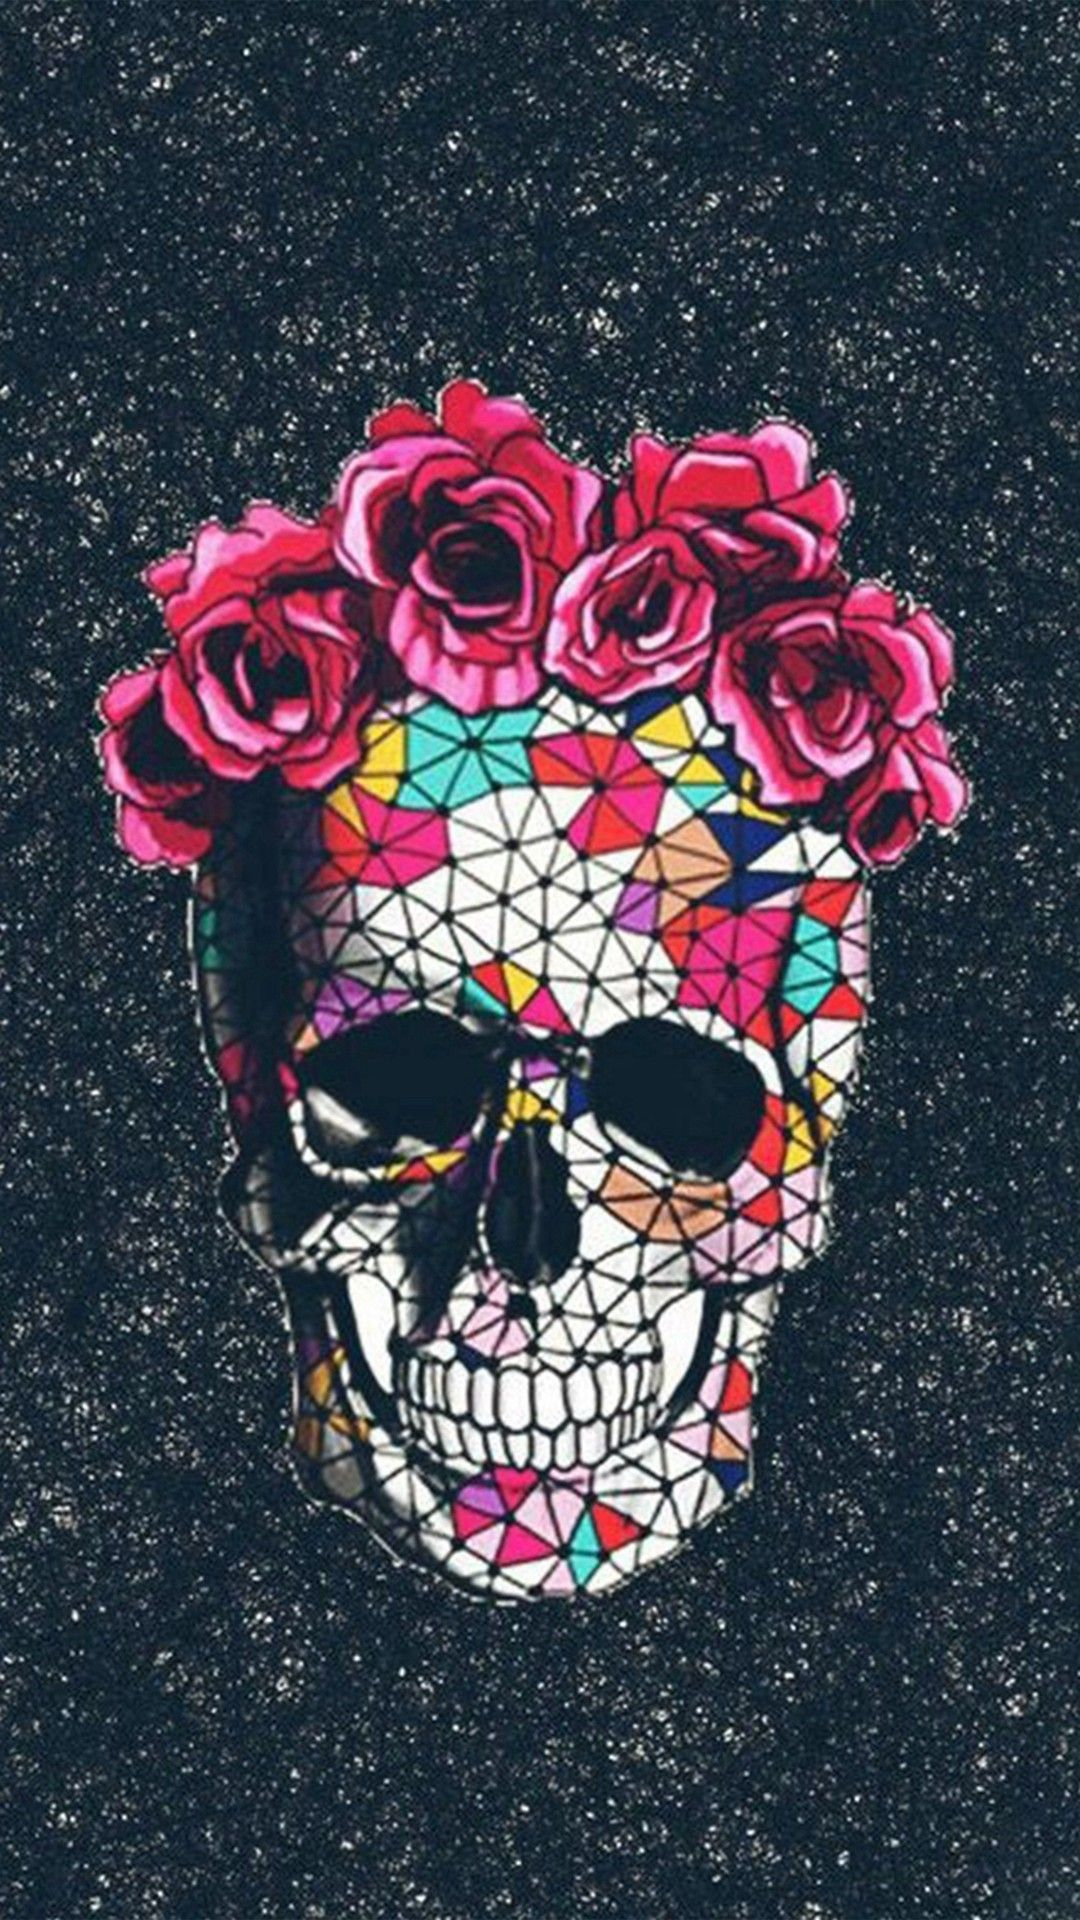 1080x1920 1080x1920 Colorful Skull Roses Space Iphone 8 Wallpaper A Download A Advertise Here Skull Wallpaper Skull Tumblr Wallpaper